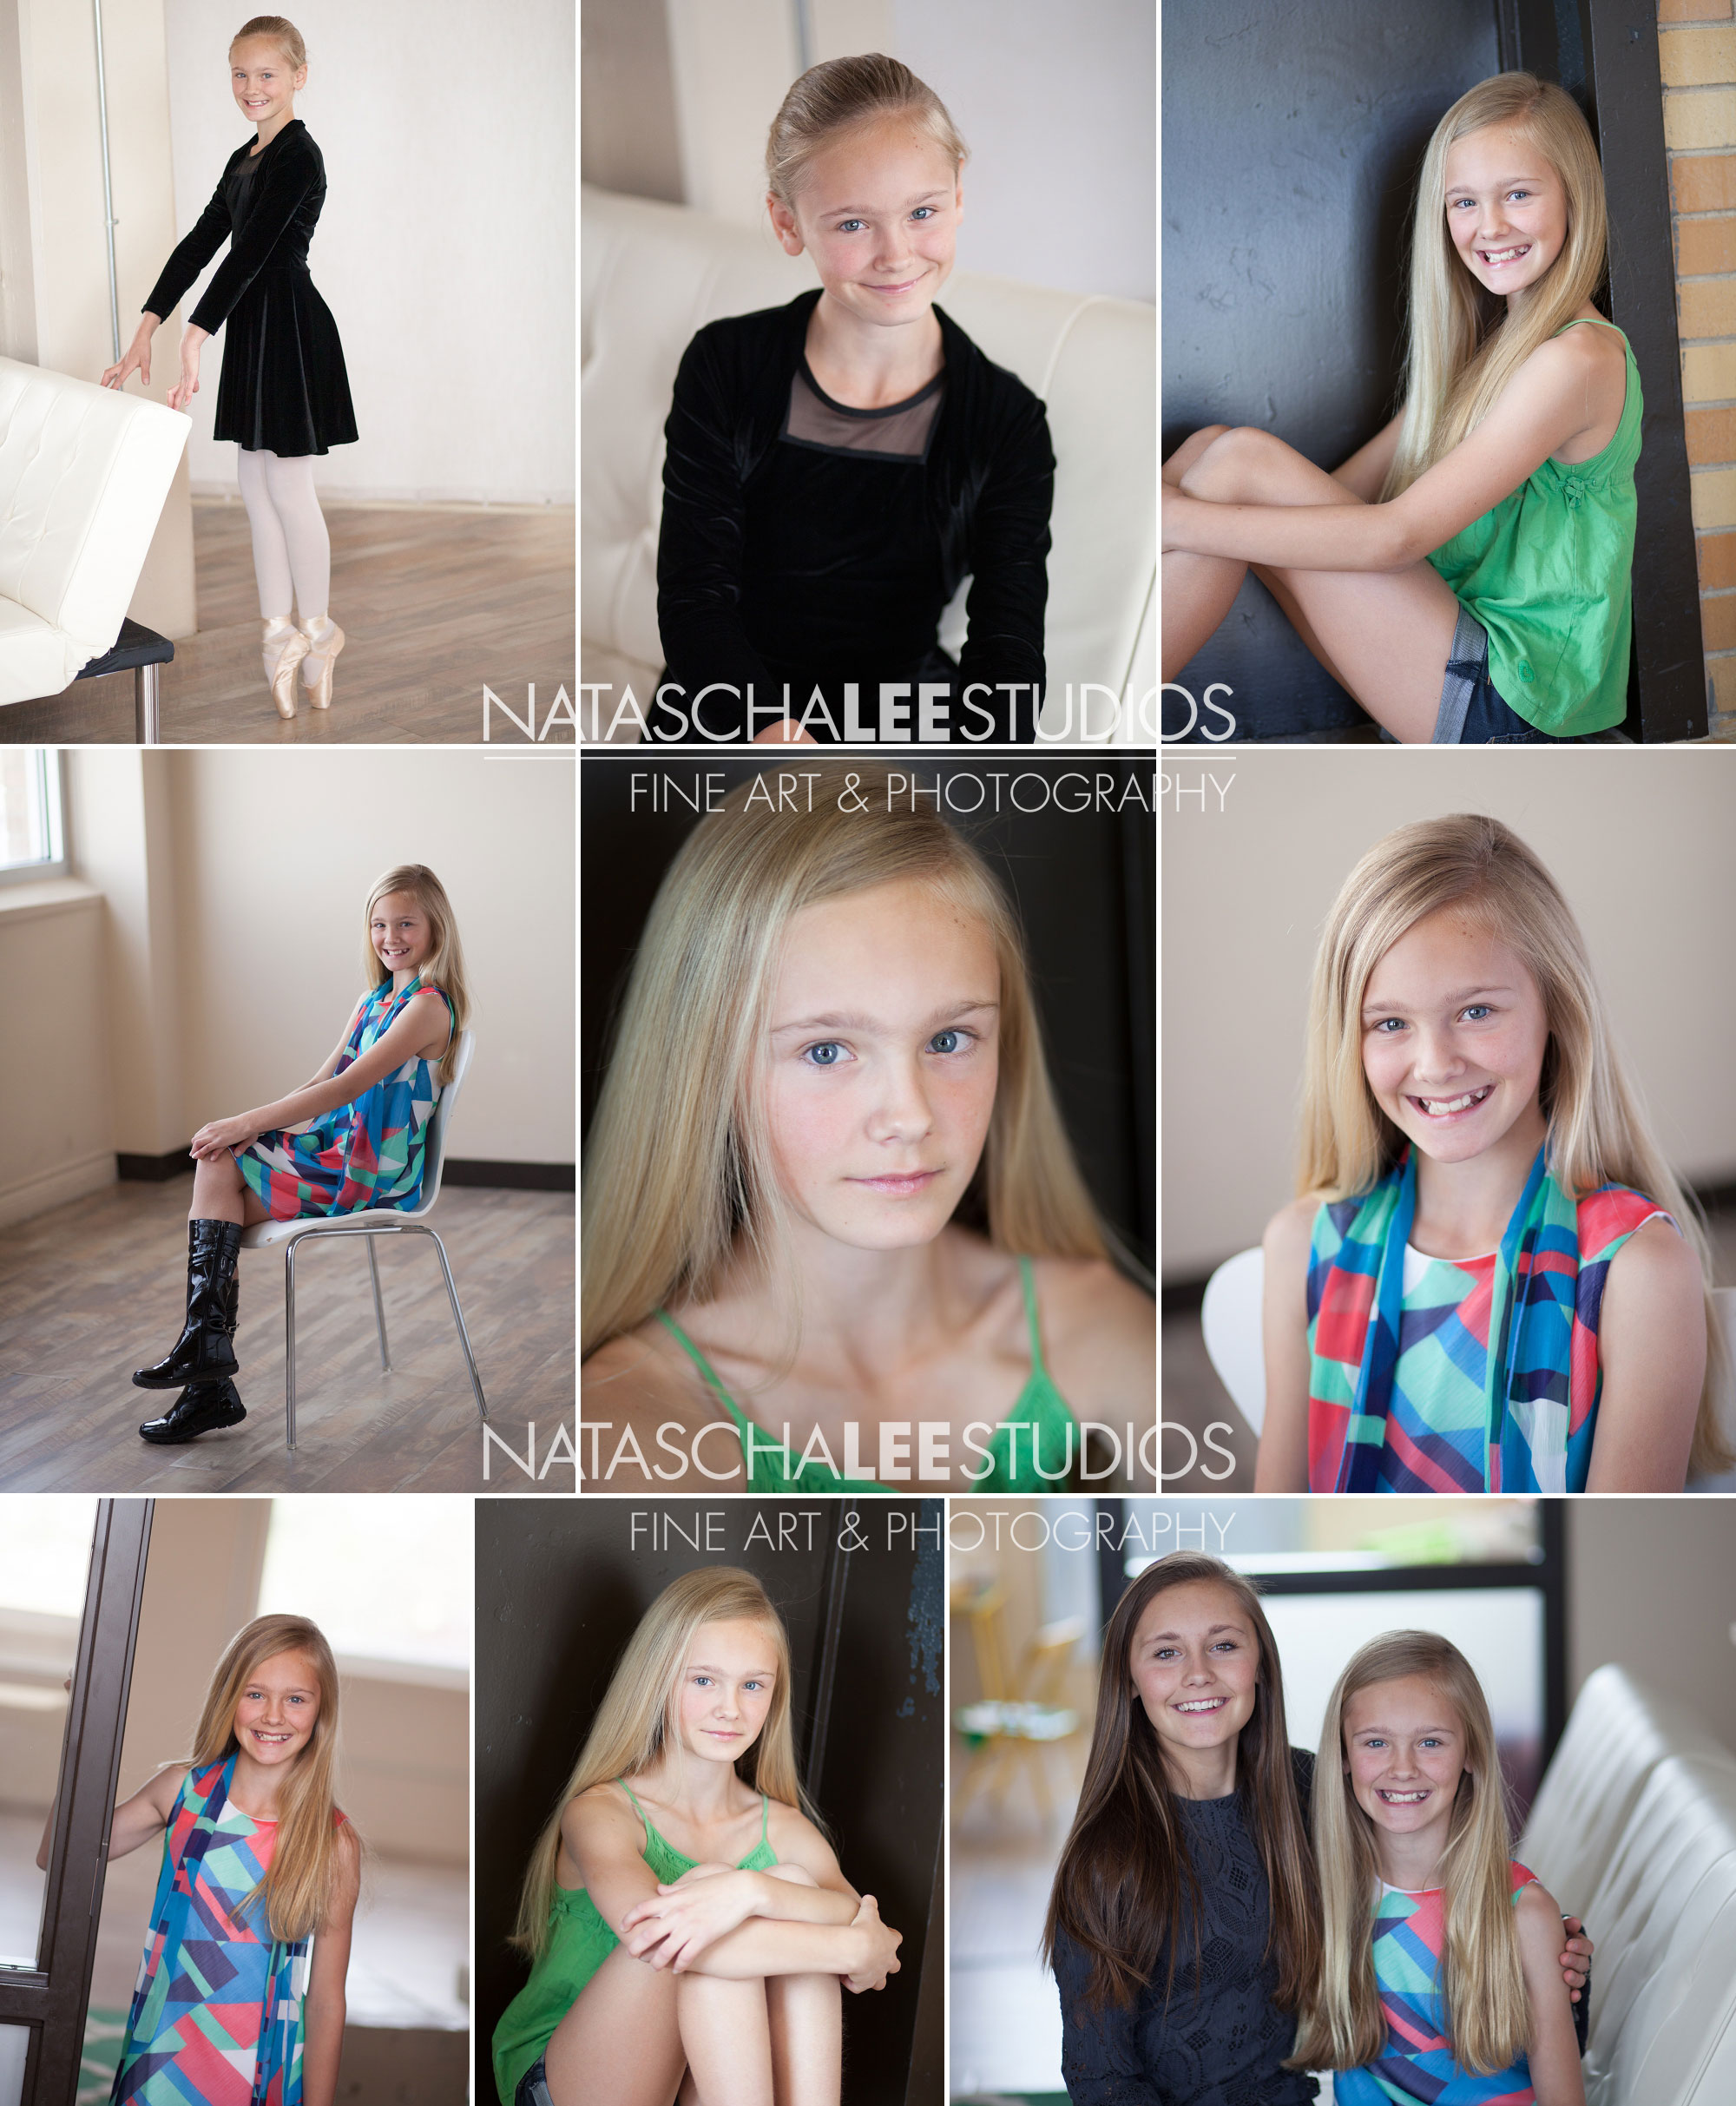 Denver Dancer Tween Teen Girl Model Portfolio and Headshot Images by Natascha Lee Studios